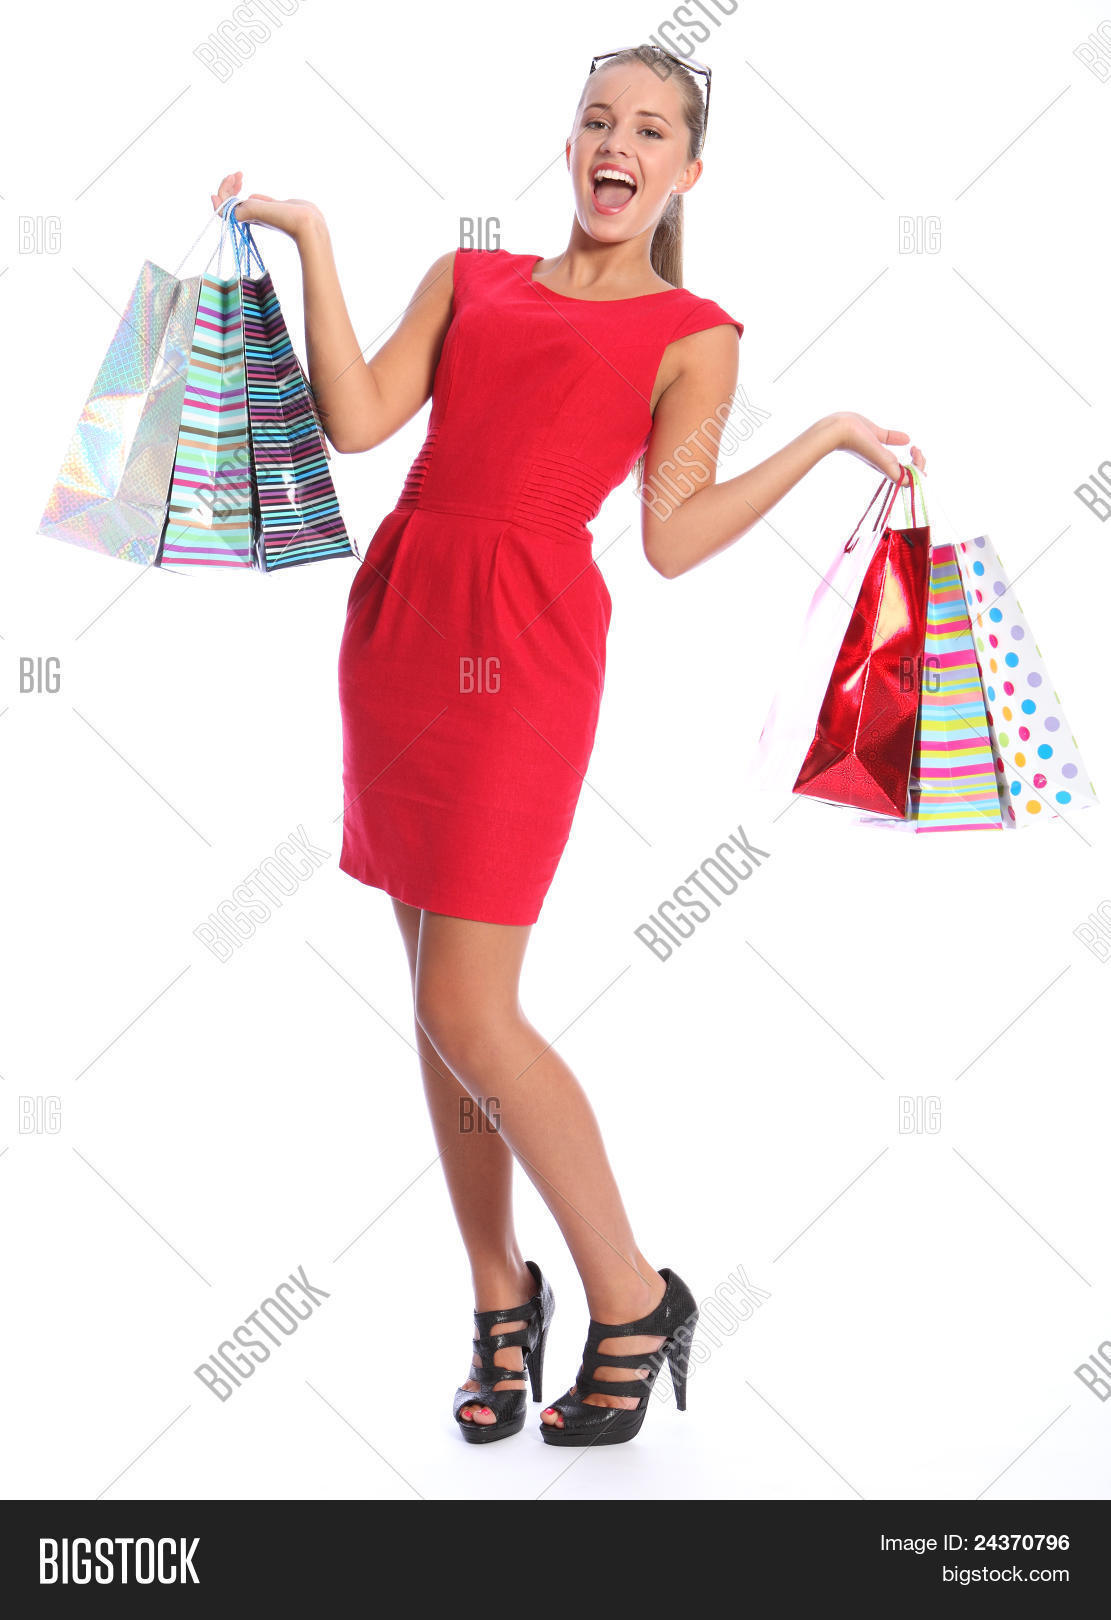 890bff079ab Shopping gift bags held by beautiful sexy young woman with lovely happy  smile wearing black high heeled shoes and short red dress. She has blond brown  hair ...